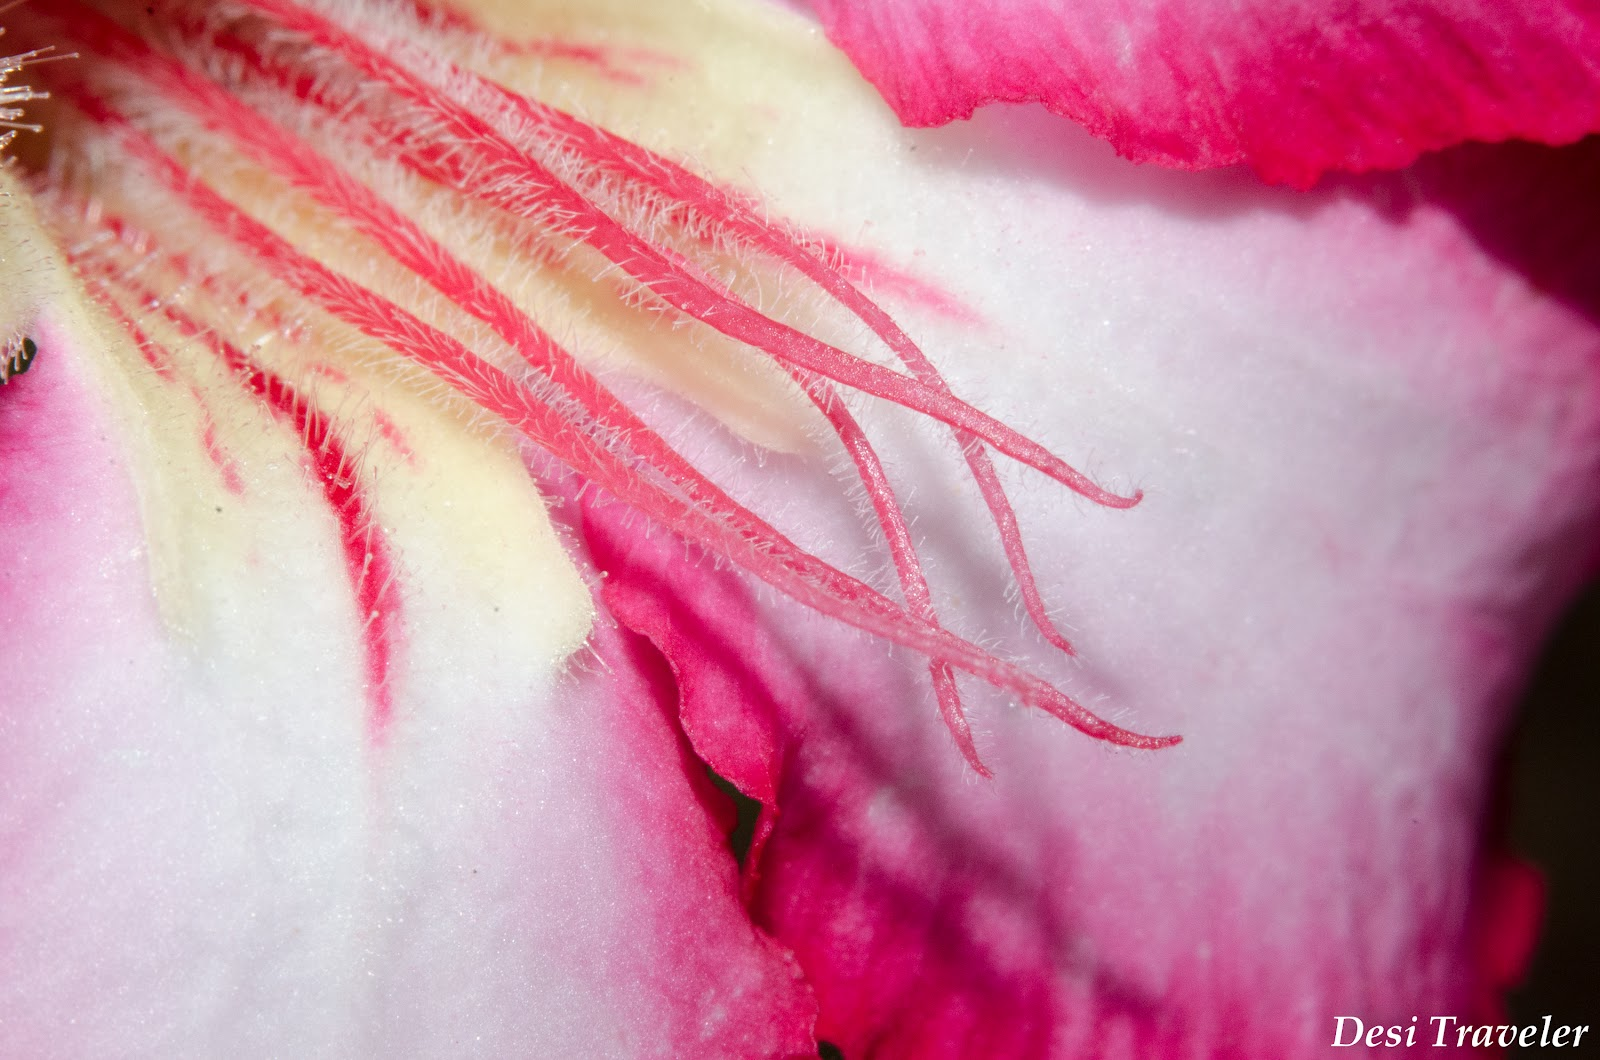 adenium flower closeup using macro photography